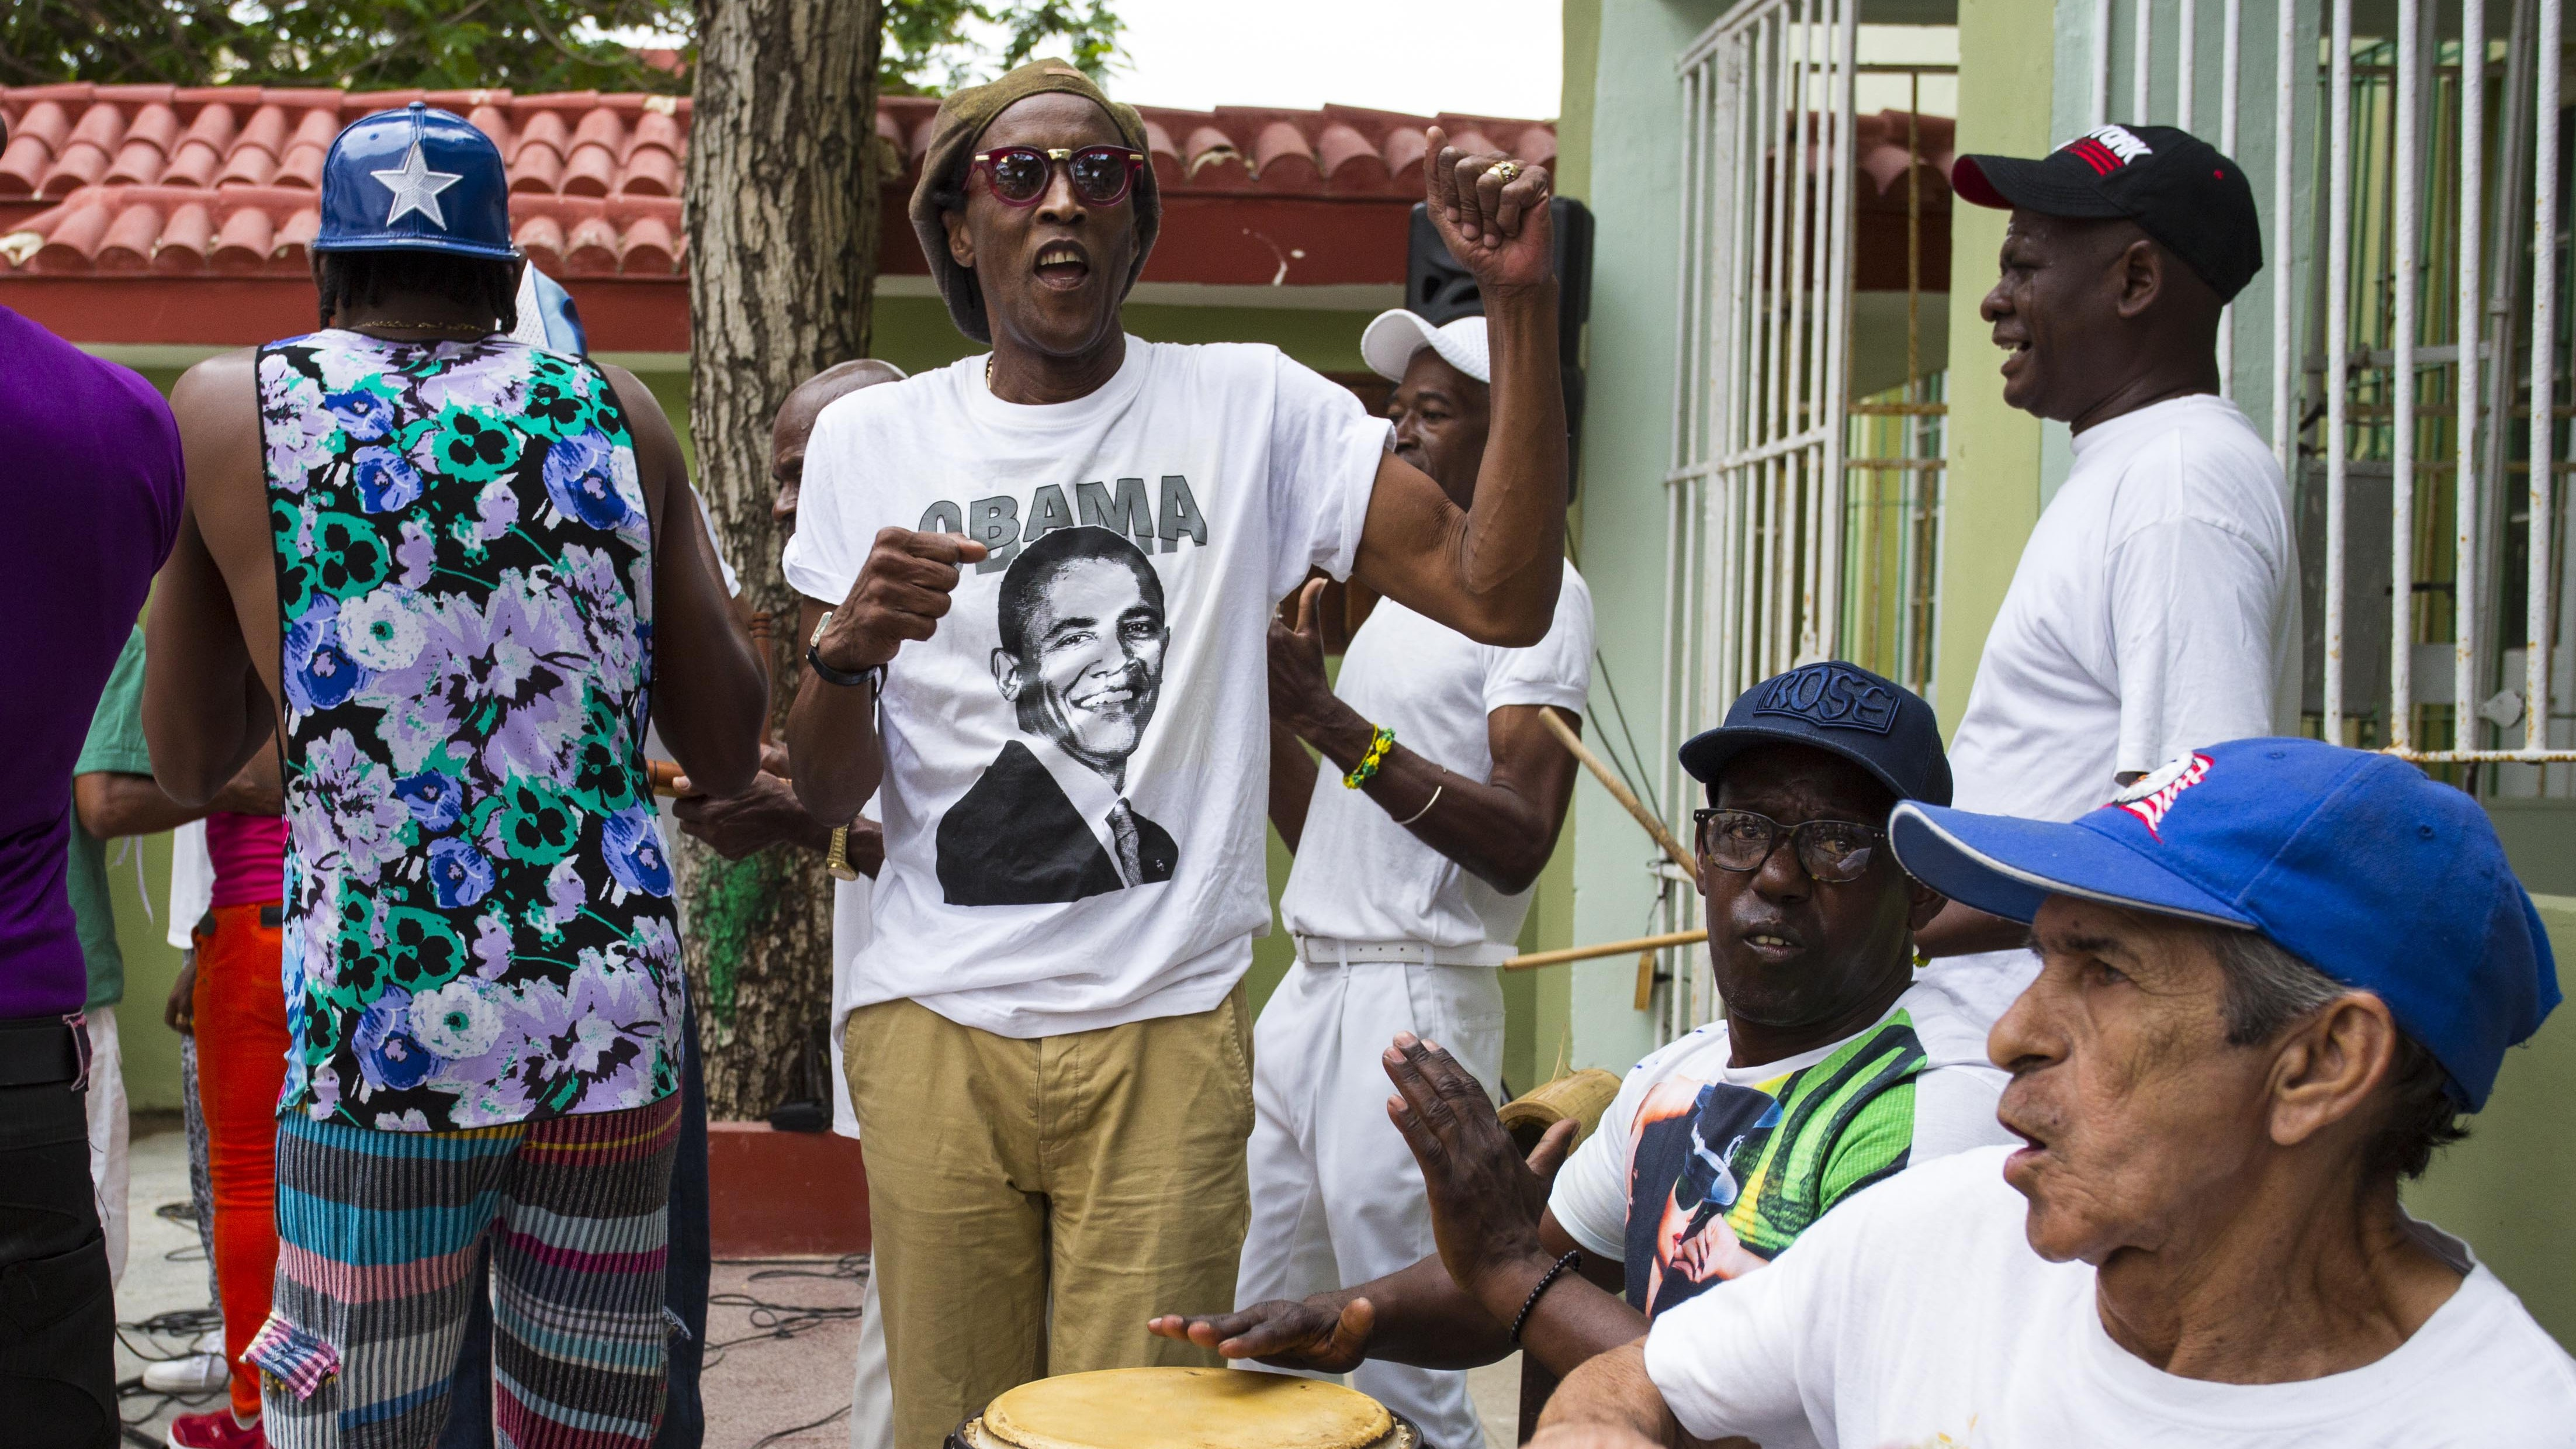 A musician performs wearing a T-shirt designed with an image of President Barack Obama at a weekly rumba dance gathering in Havana, Cuba, Saturday, March 19, 2016. For hundreds of thousands of black Cubans, Obama isn't just the first U.S. leader to visit their country in nearly nine decades. He's a black man whose rise to the world's most powerful job is a source of pride and inspiration for a community that still struggles with informal racism and economic disadvantage despite the revolutionary government's attempt to end racial prejudice in Cuba. ()